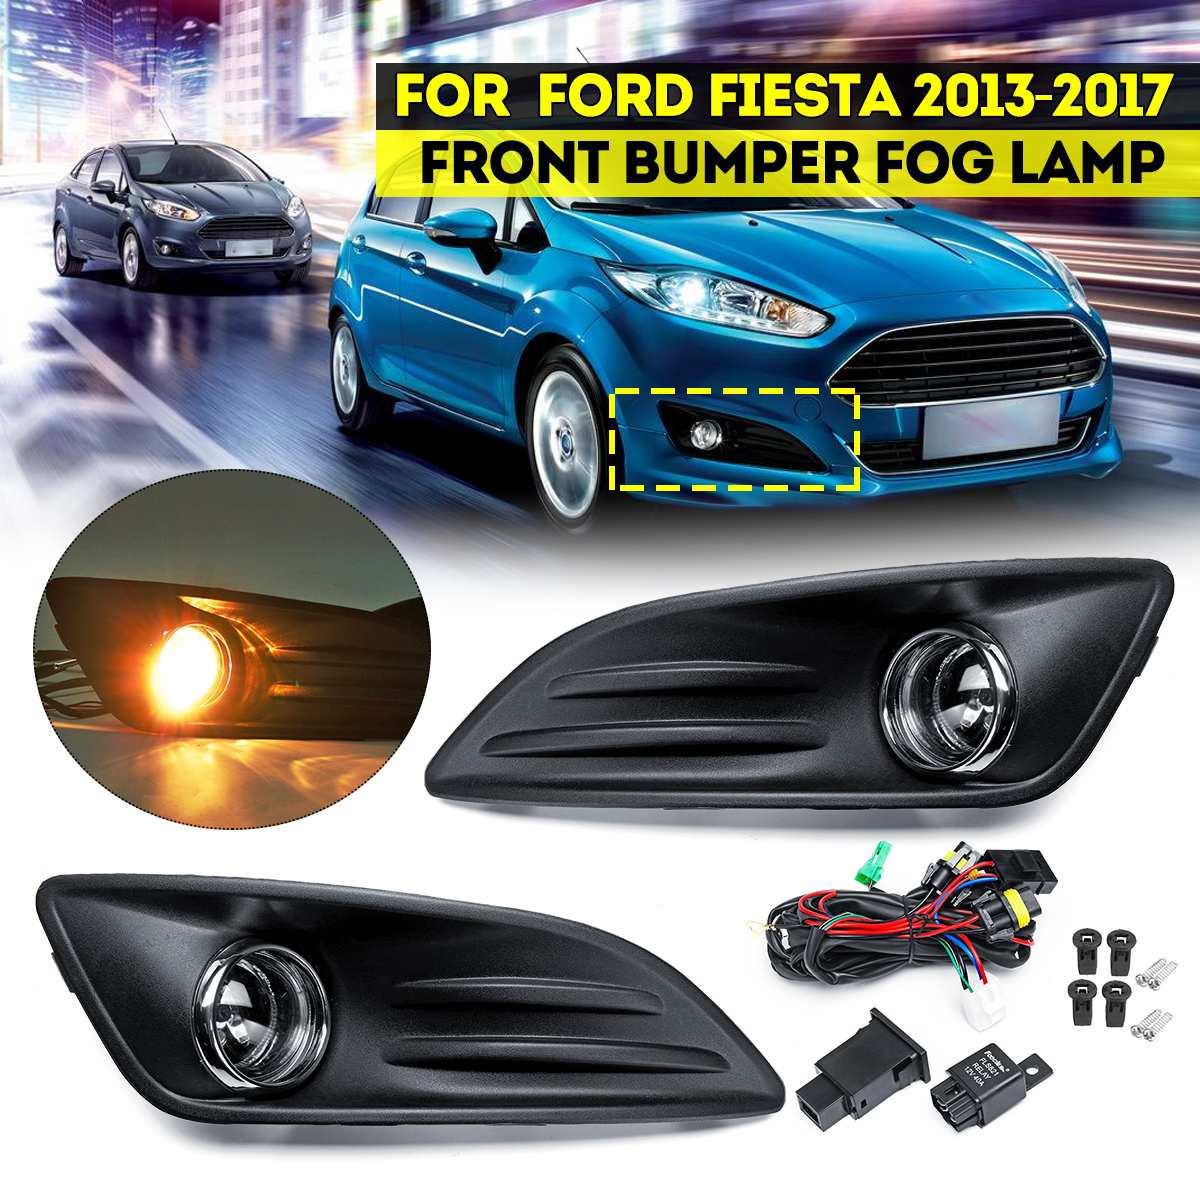 Car Fog Light With Grill And Wire for Ford iesta mk6 2013 2014 2015 2016 2017 Foglight Front Bumper Headlight Accessories Cover